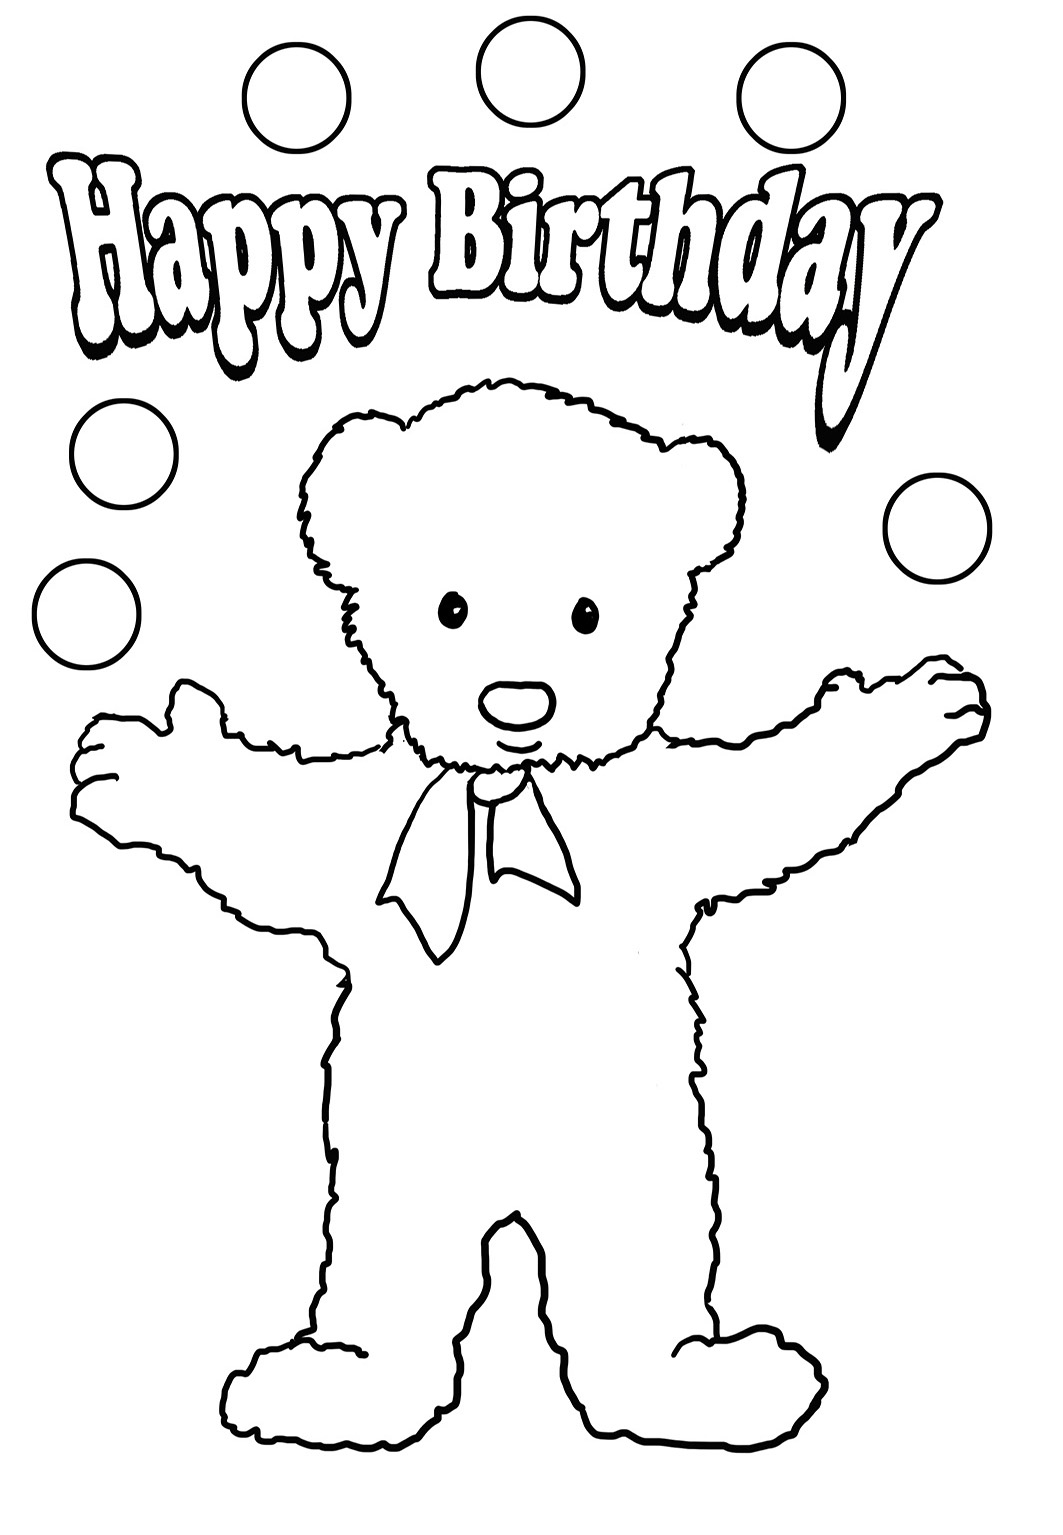 Paw patrol coloring pages happy birthday - Happy Birthday Dinosaur Coloring Pages Coloring Pages To Print Birthday Tedd Bear